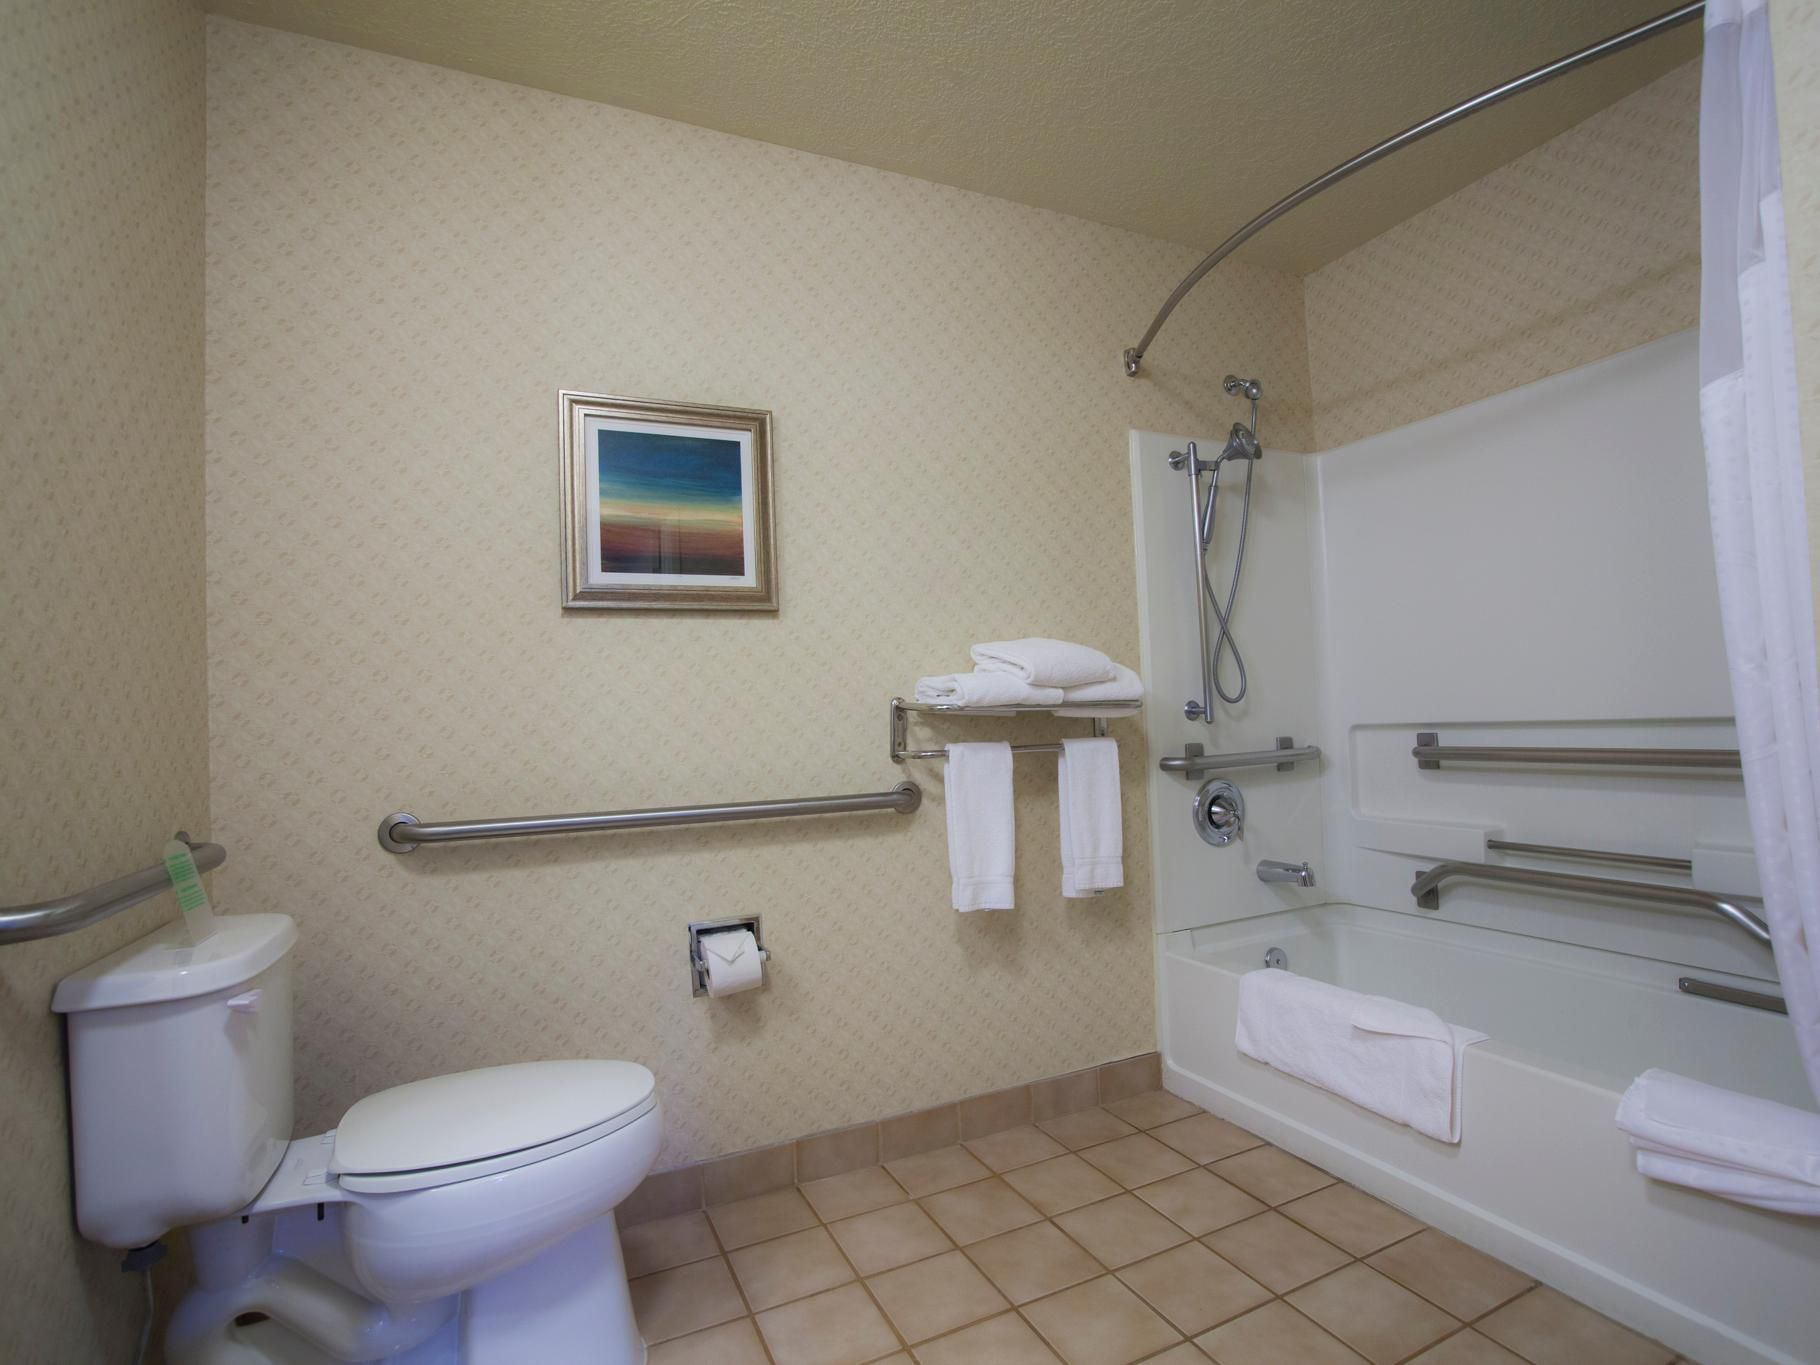 Find space and special amenities in our handicapp suite bathroom